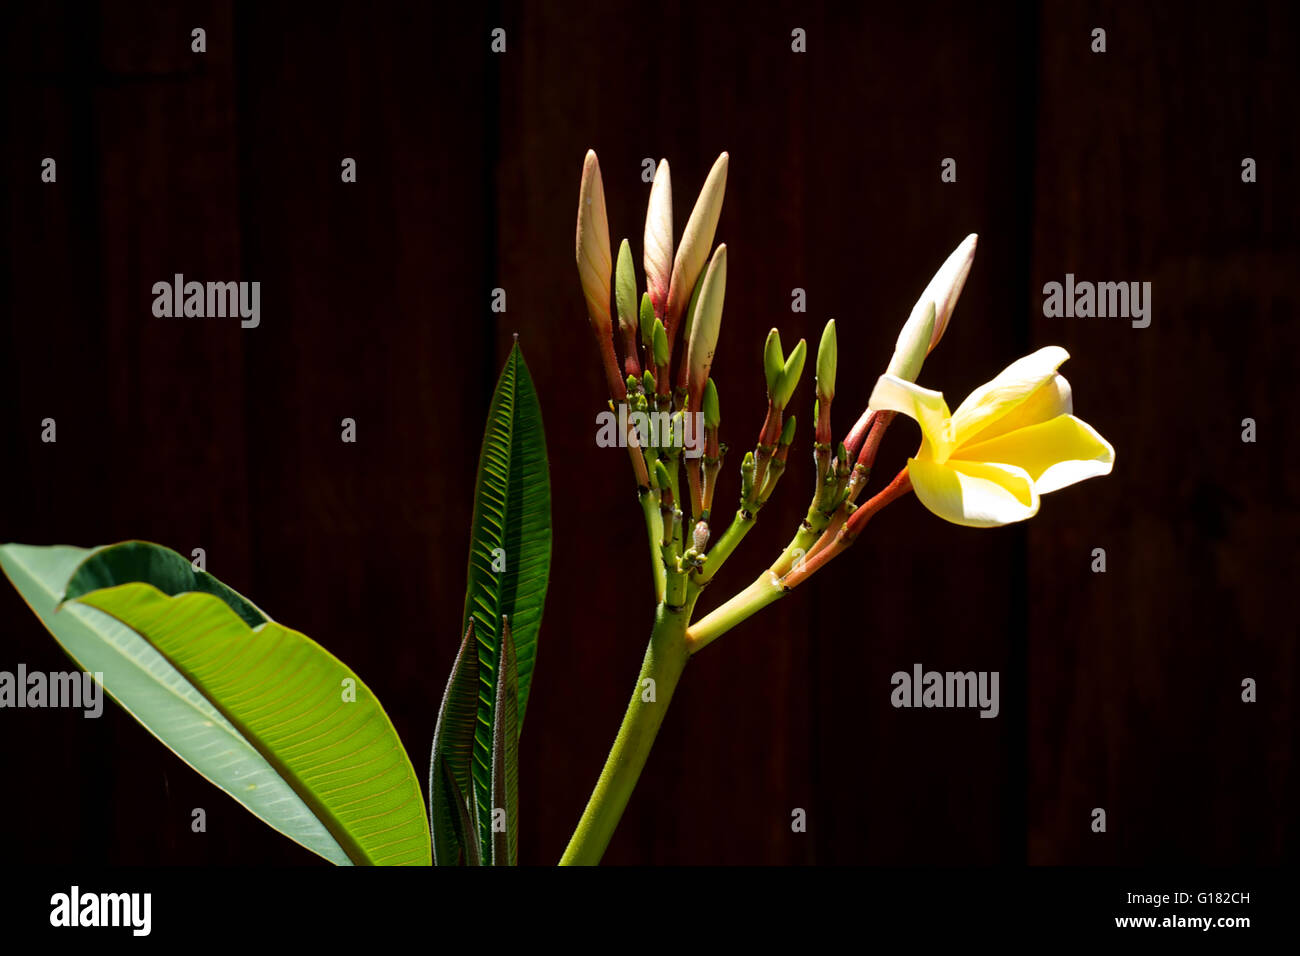 Detail Of Beautiful Plumeria Tree Showing Buds And An Open Flower In